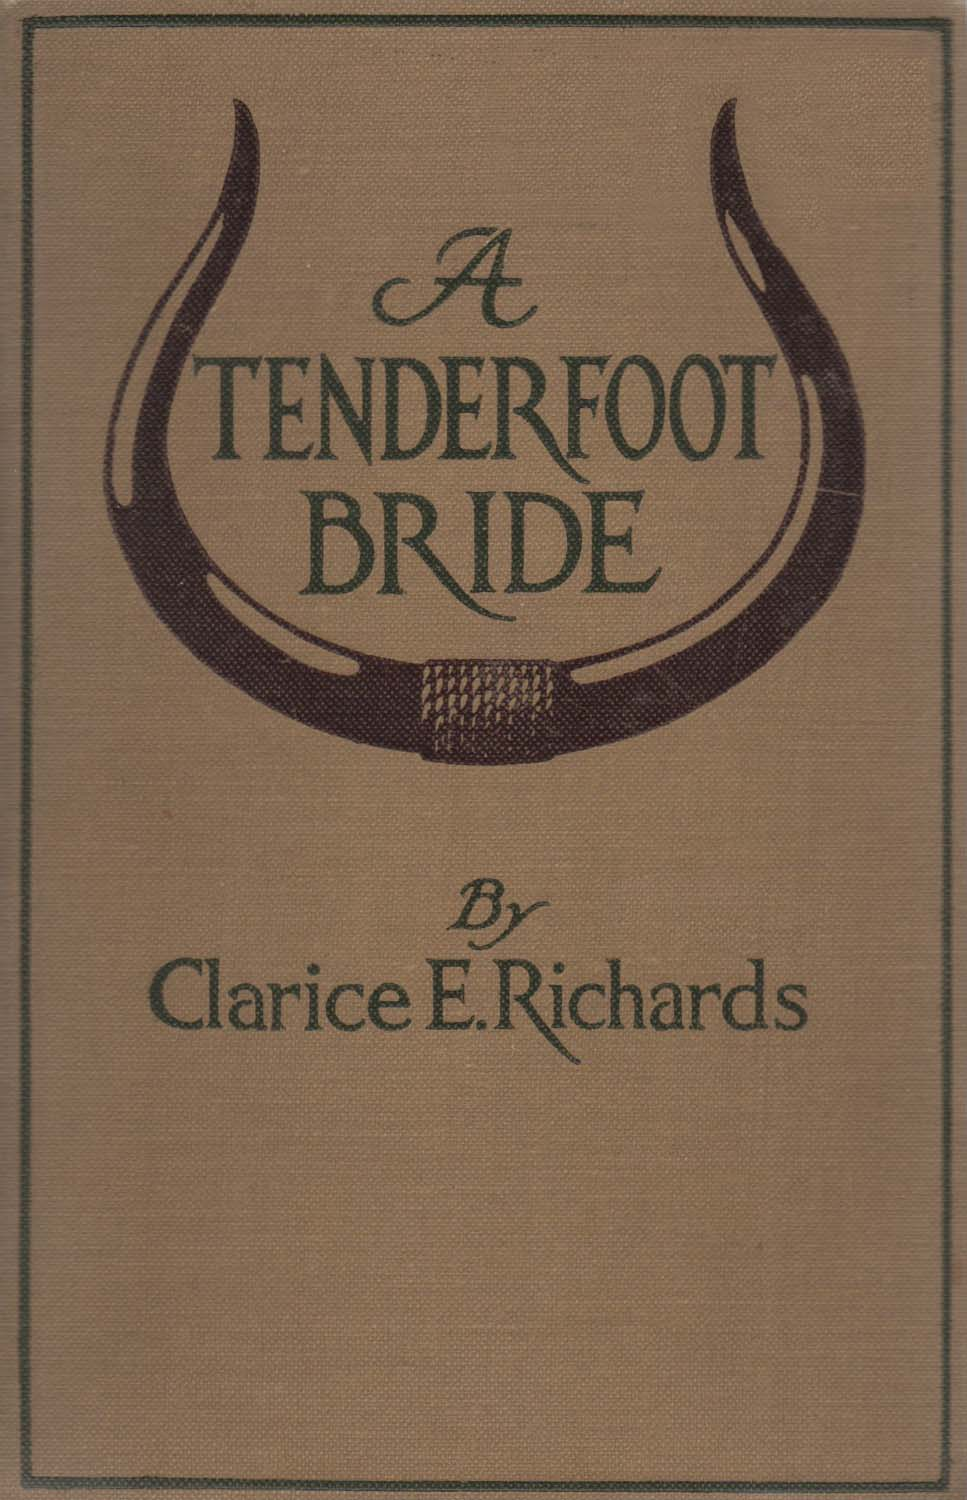 A Tenderfoot Bride by Clarice E. Richards